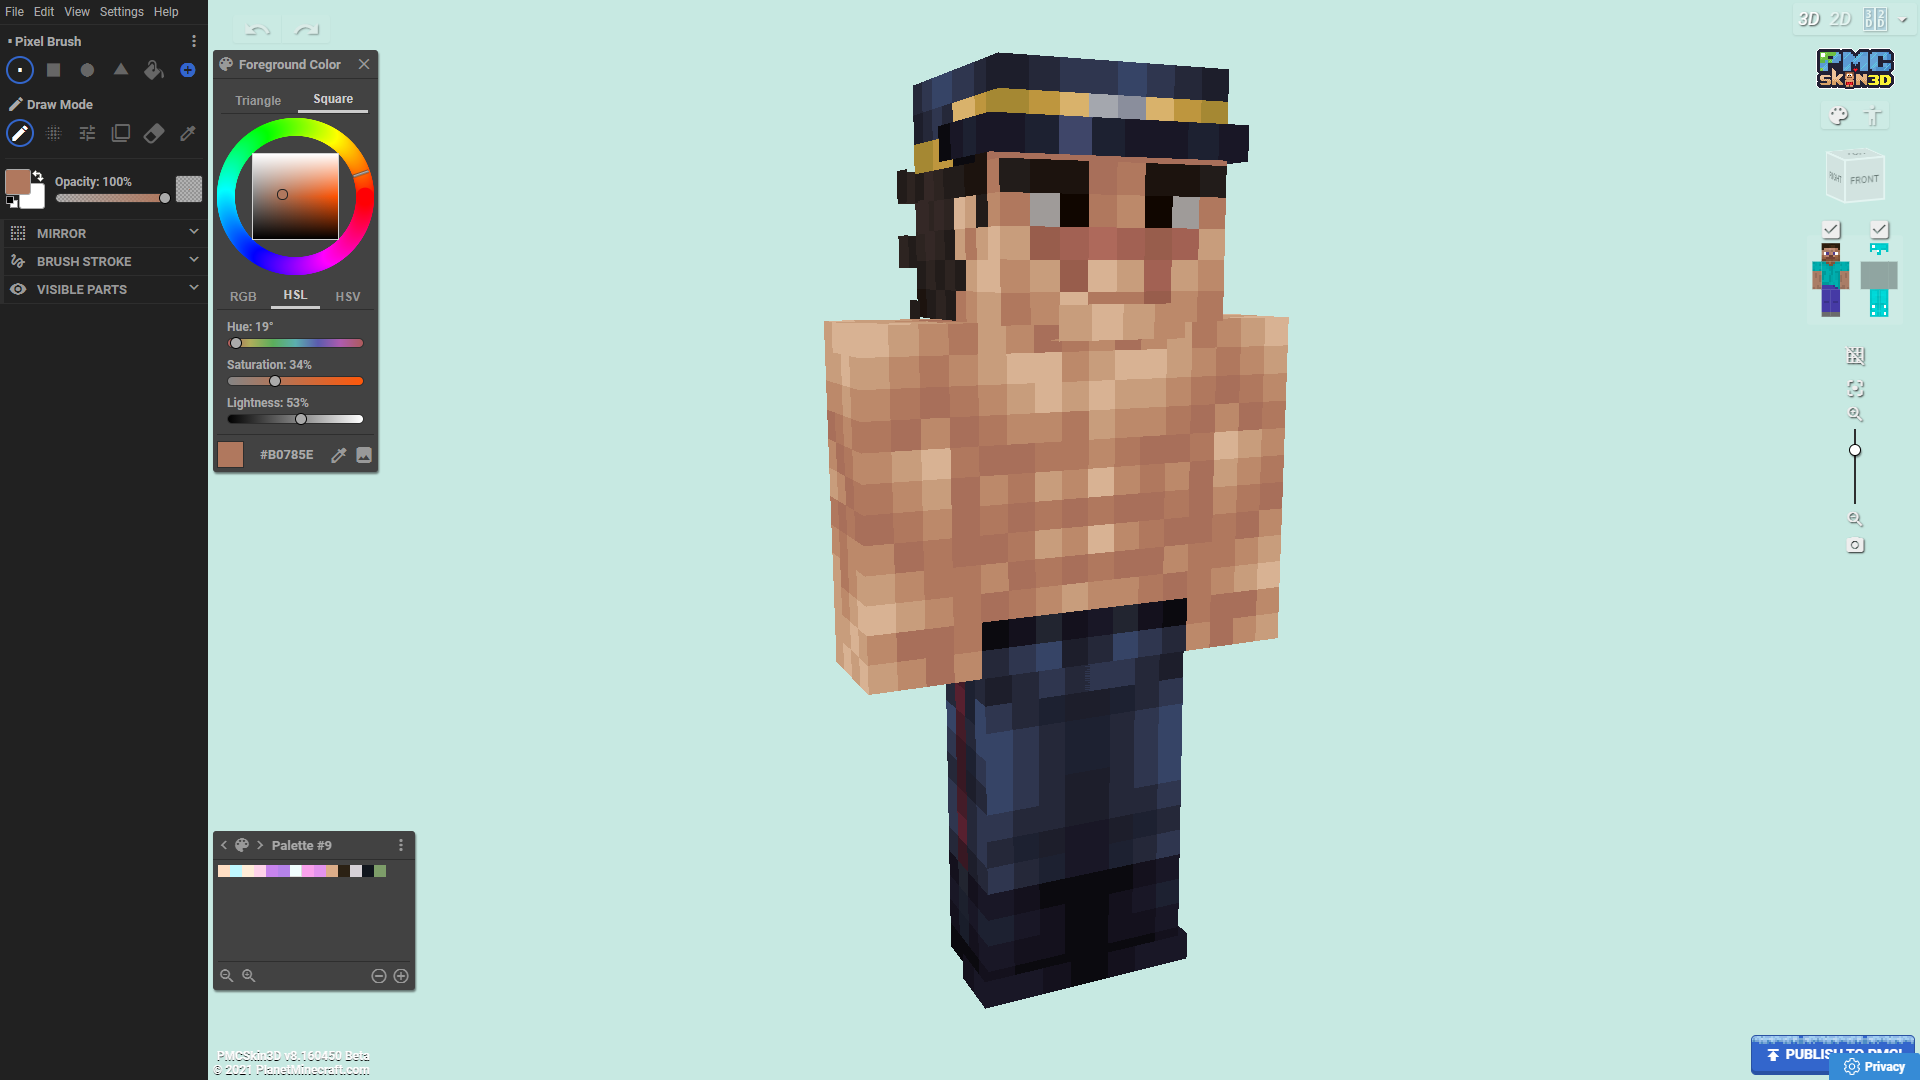 Saichi Sugimoto - Golden Kamuy (Request) Minecraft Skin